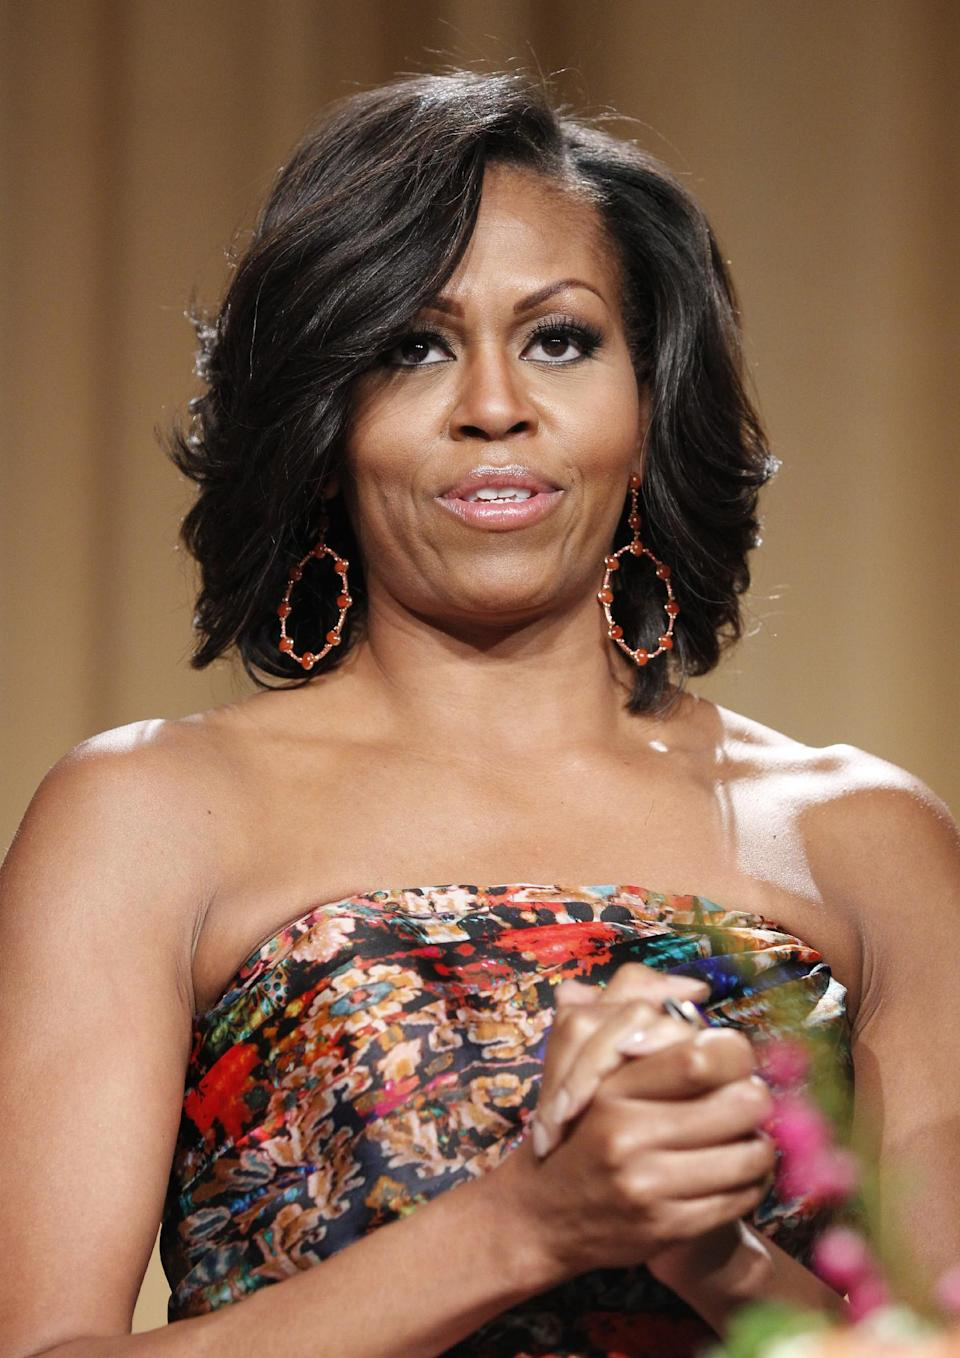 First lady Michelle Obama attends the White House Correspondents' Association Dinner headlined by late-night comic Jimmy Kimmel, Saturday, April 28, 2012, in Washington. (AP Photo/Haraz N. Ghanbari)